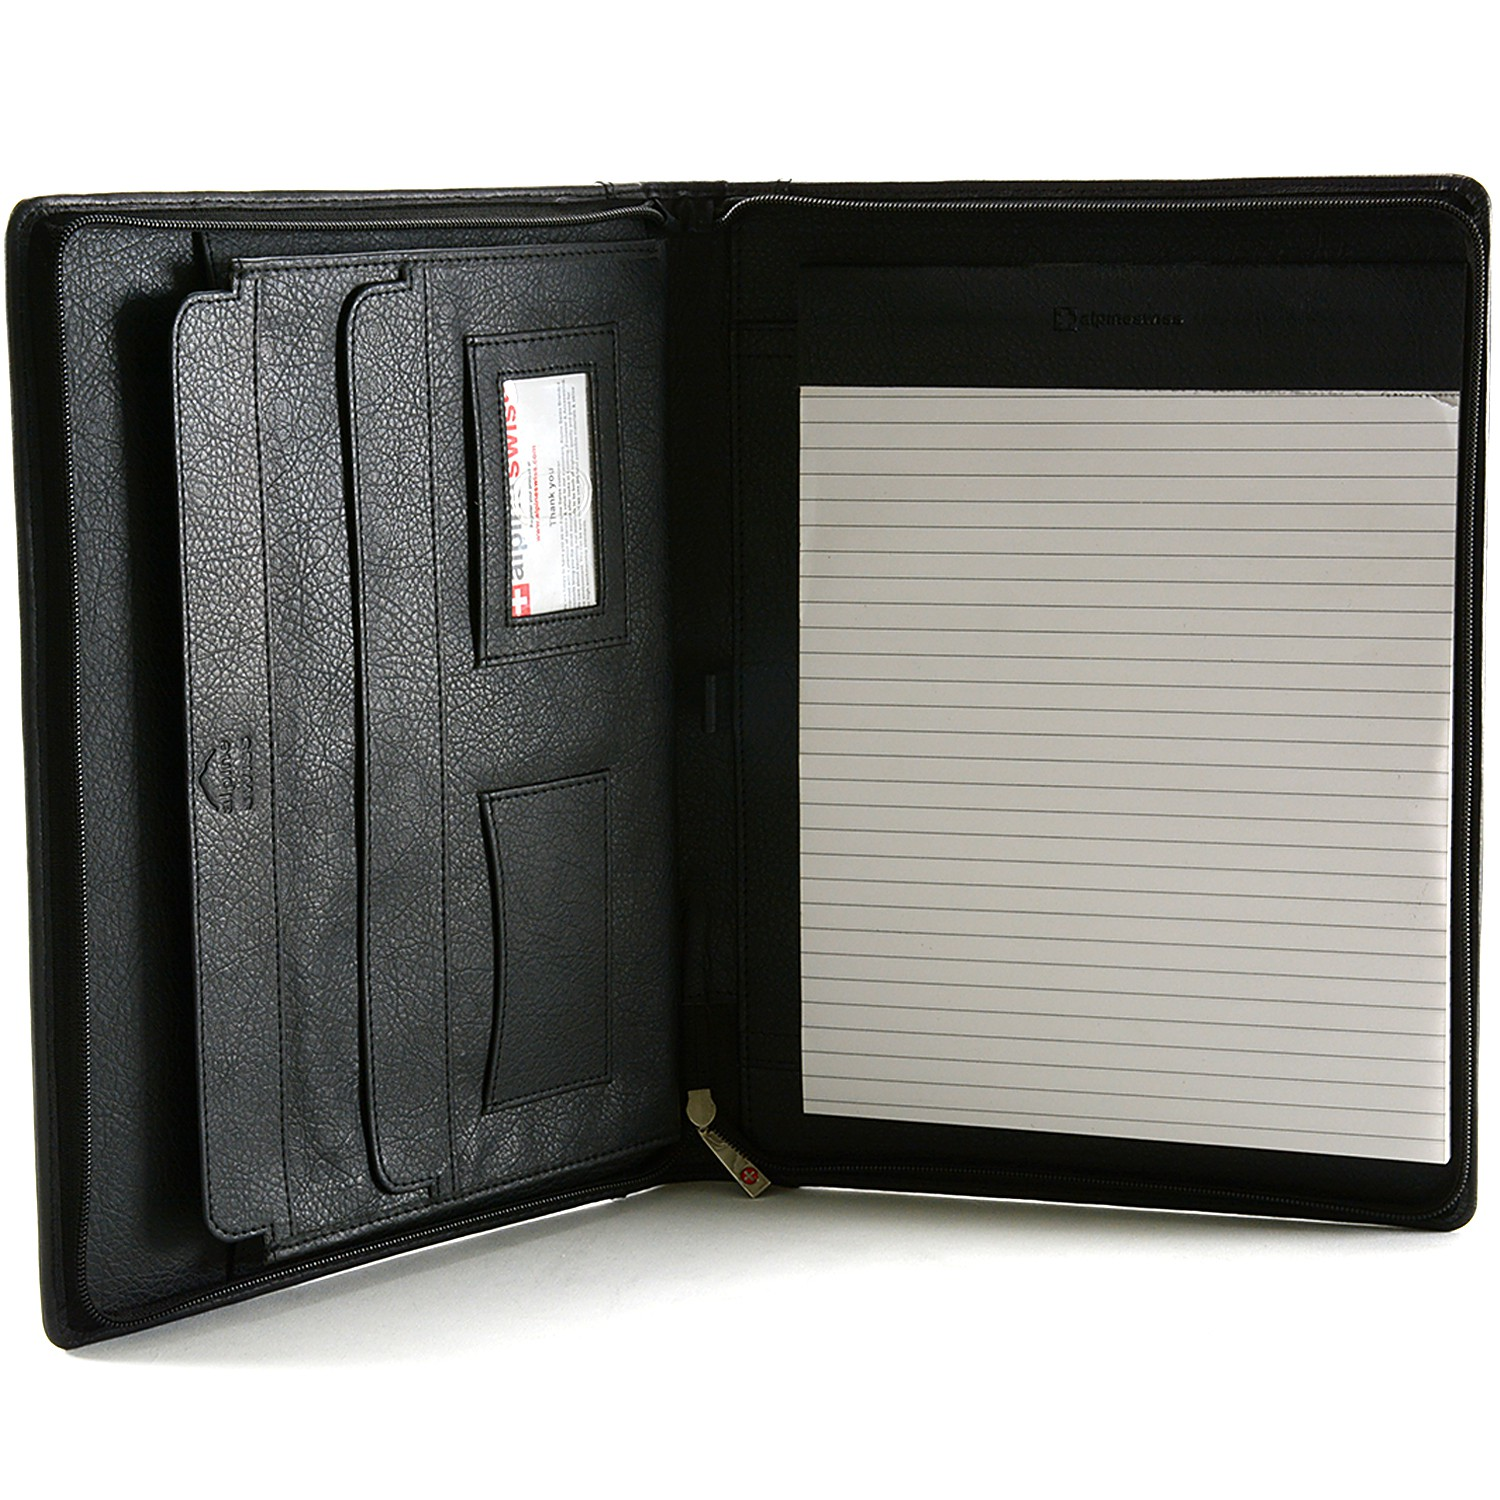 Alpine Swiss Leather Zippered Writing Pad Portfolio